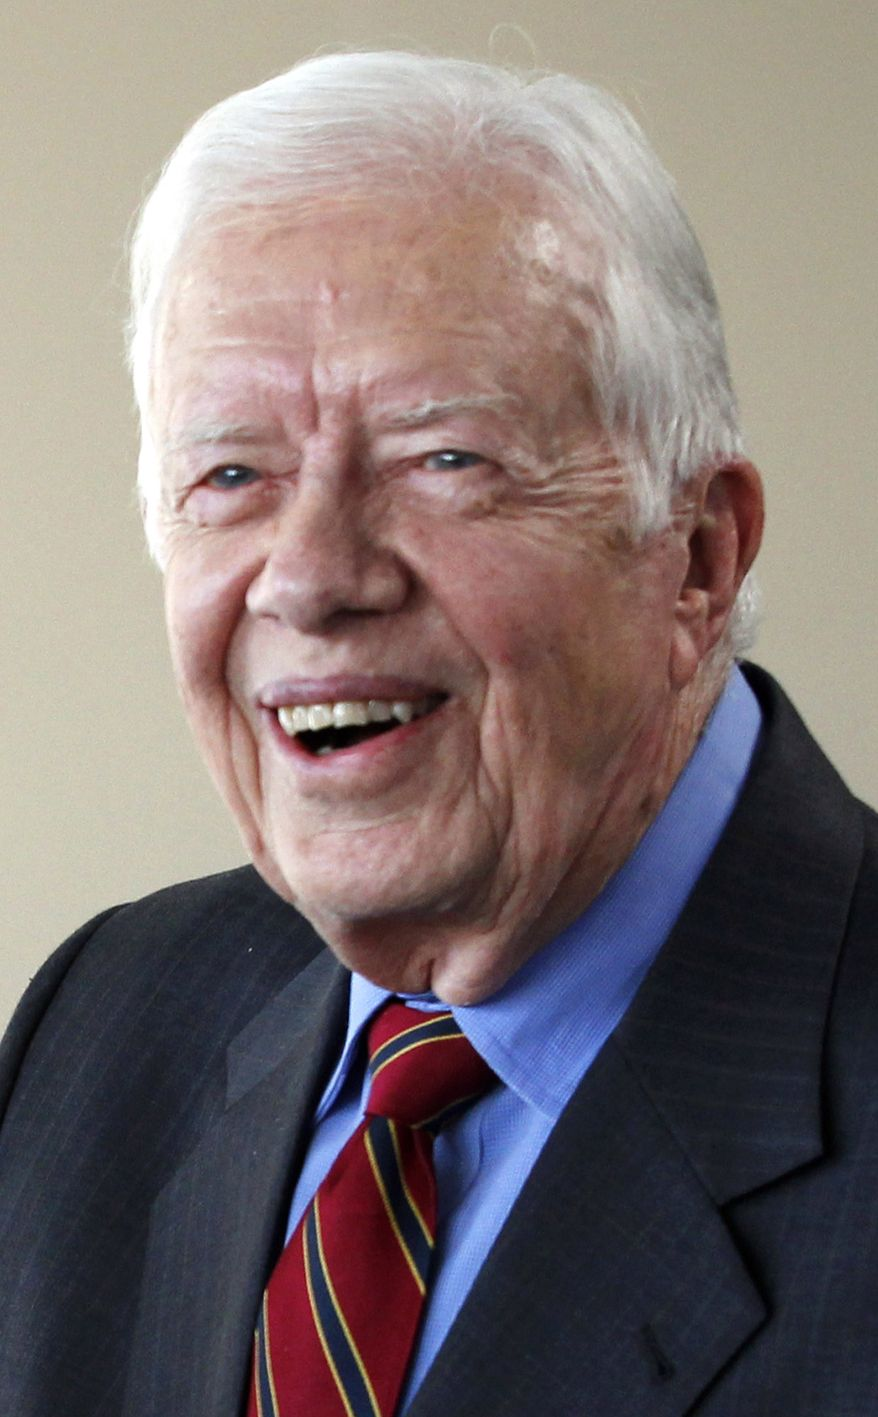 In an Aug. 31, 2010, file photo, former President Jimmy Carter leaves the State Department in Washington. An airport spokeswoman in Cleveland says former President Jimmy Carter has been hospitalized. (AP Photo/Manuel Balce Ceneta, File)